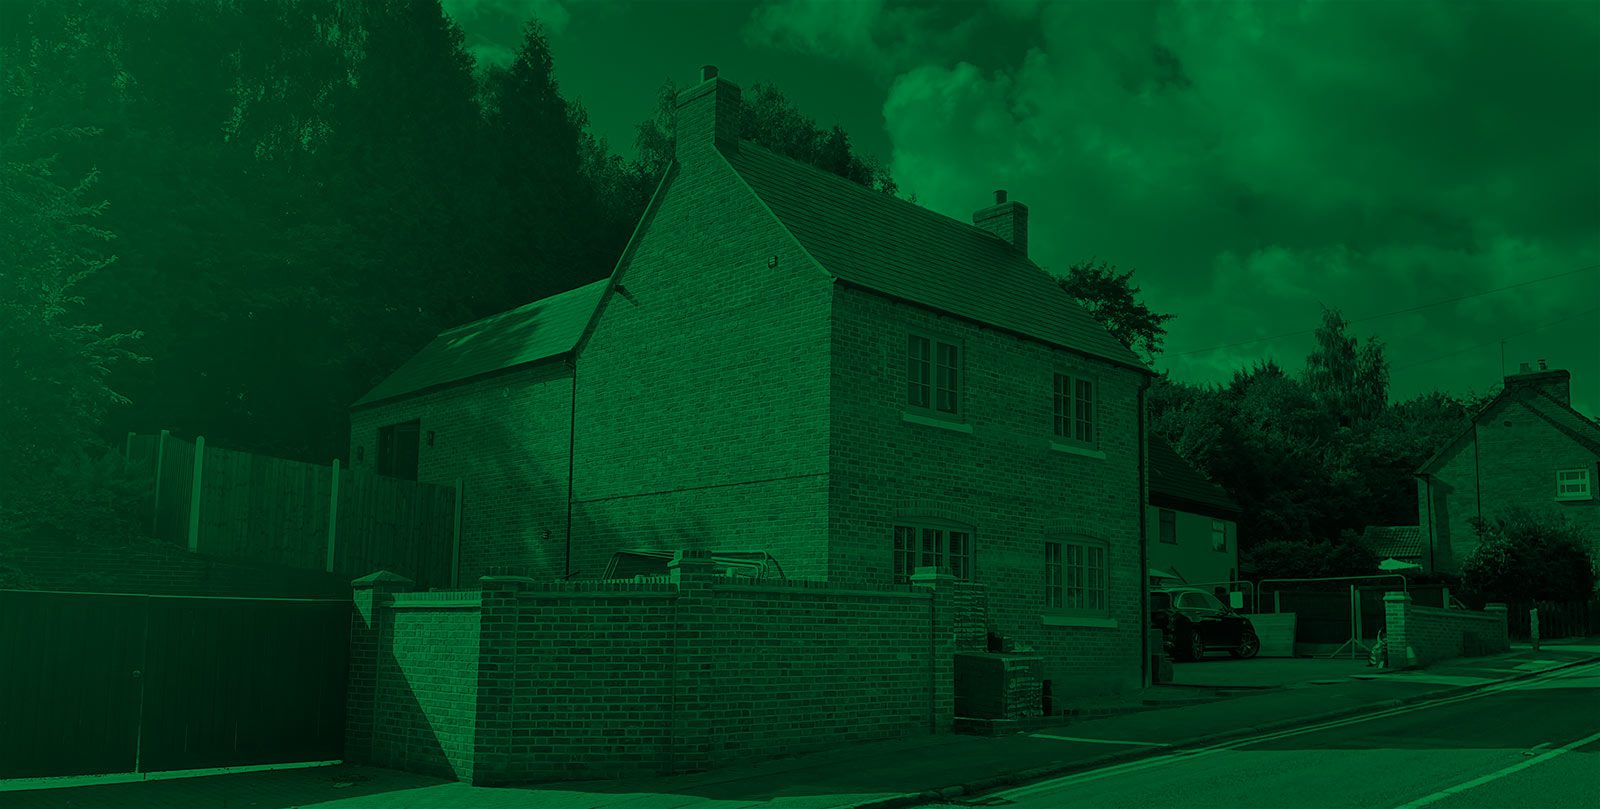 New Dwelling in the Castle Donington Conservation Area